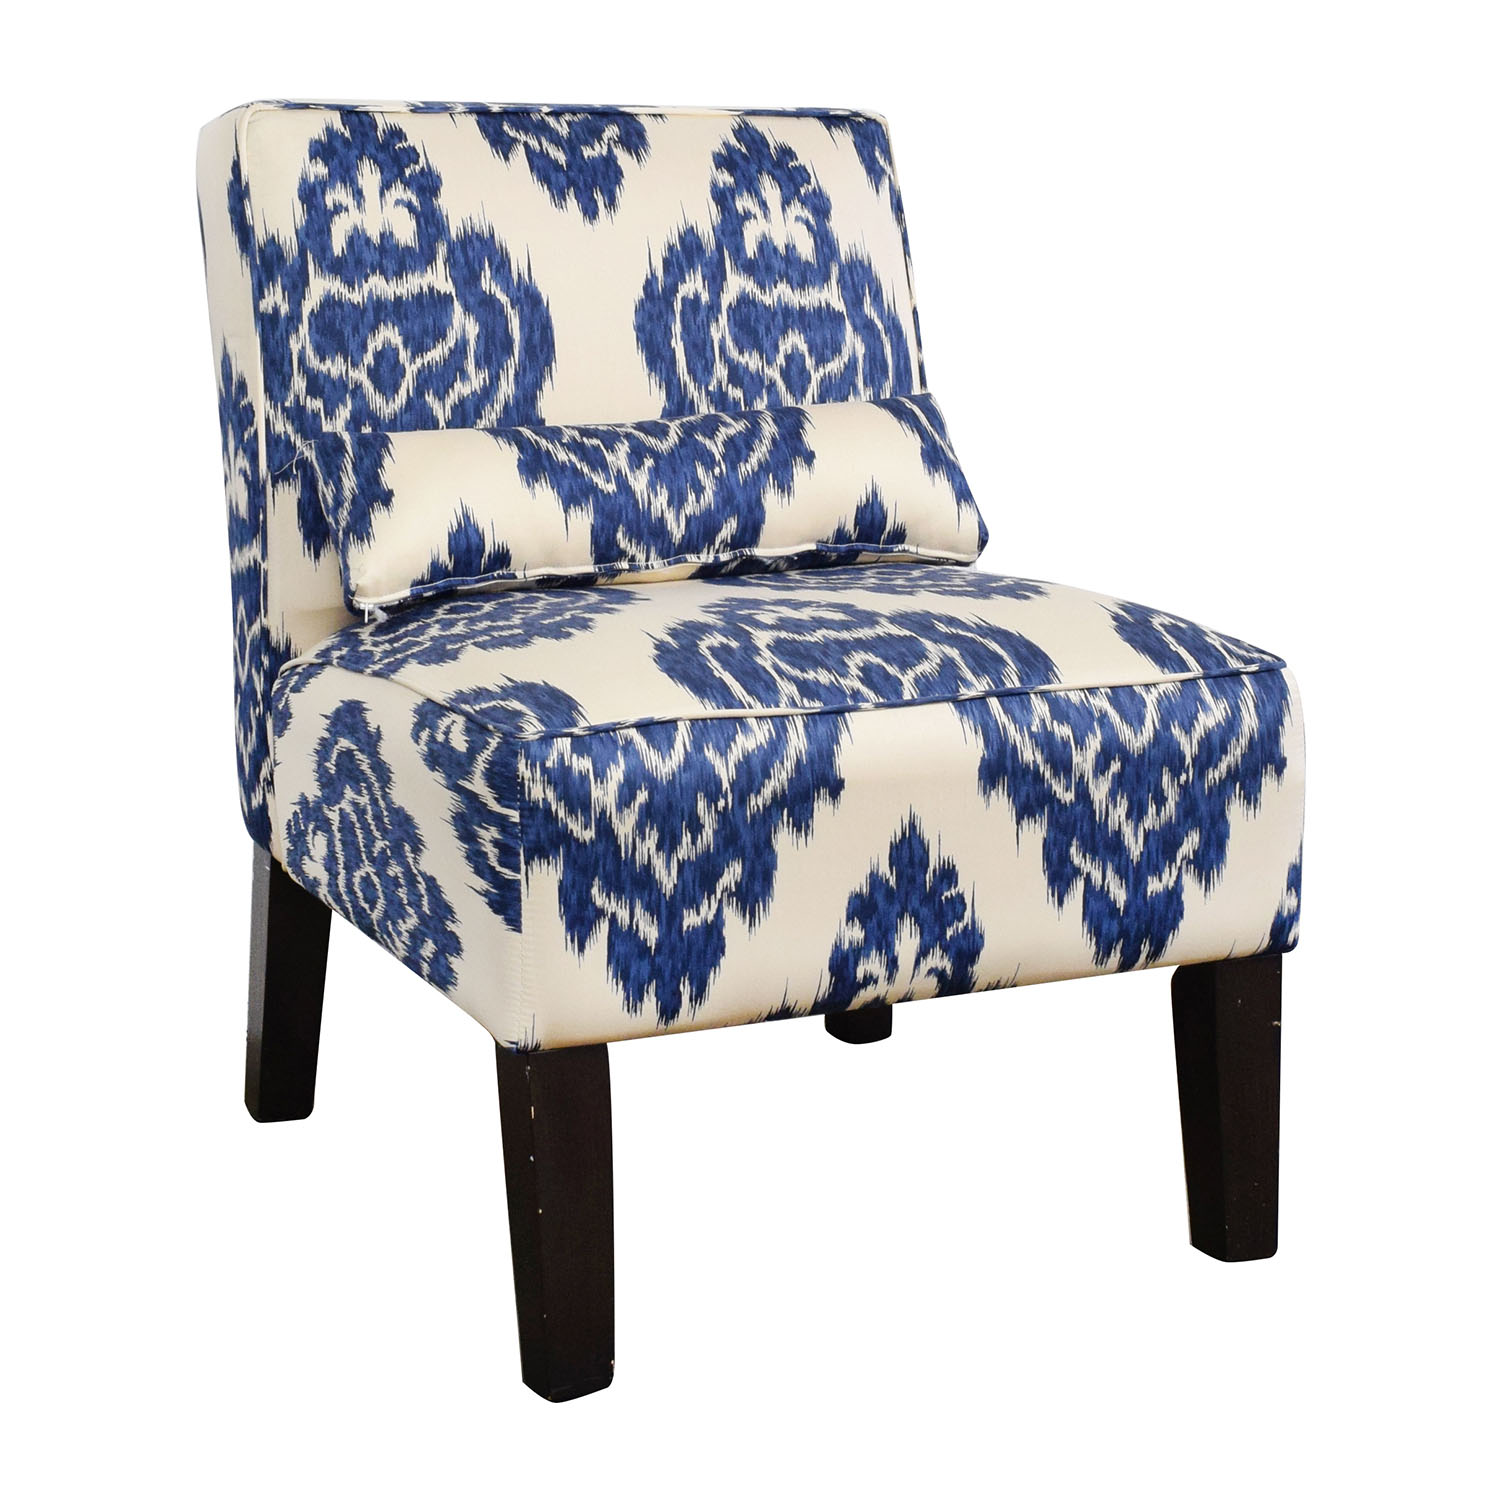 Surprising 52 Off Overstock Overstock Blue And White Accent Chair Chairs Machost Co Dining Chair Design Ideas Machostcouk